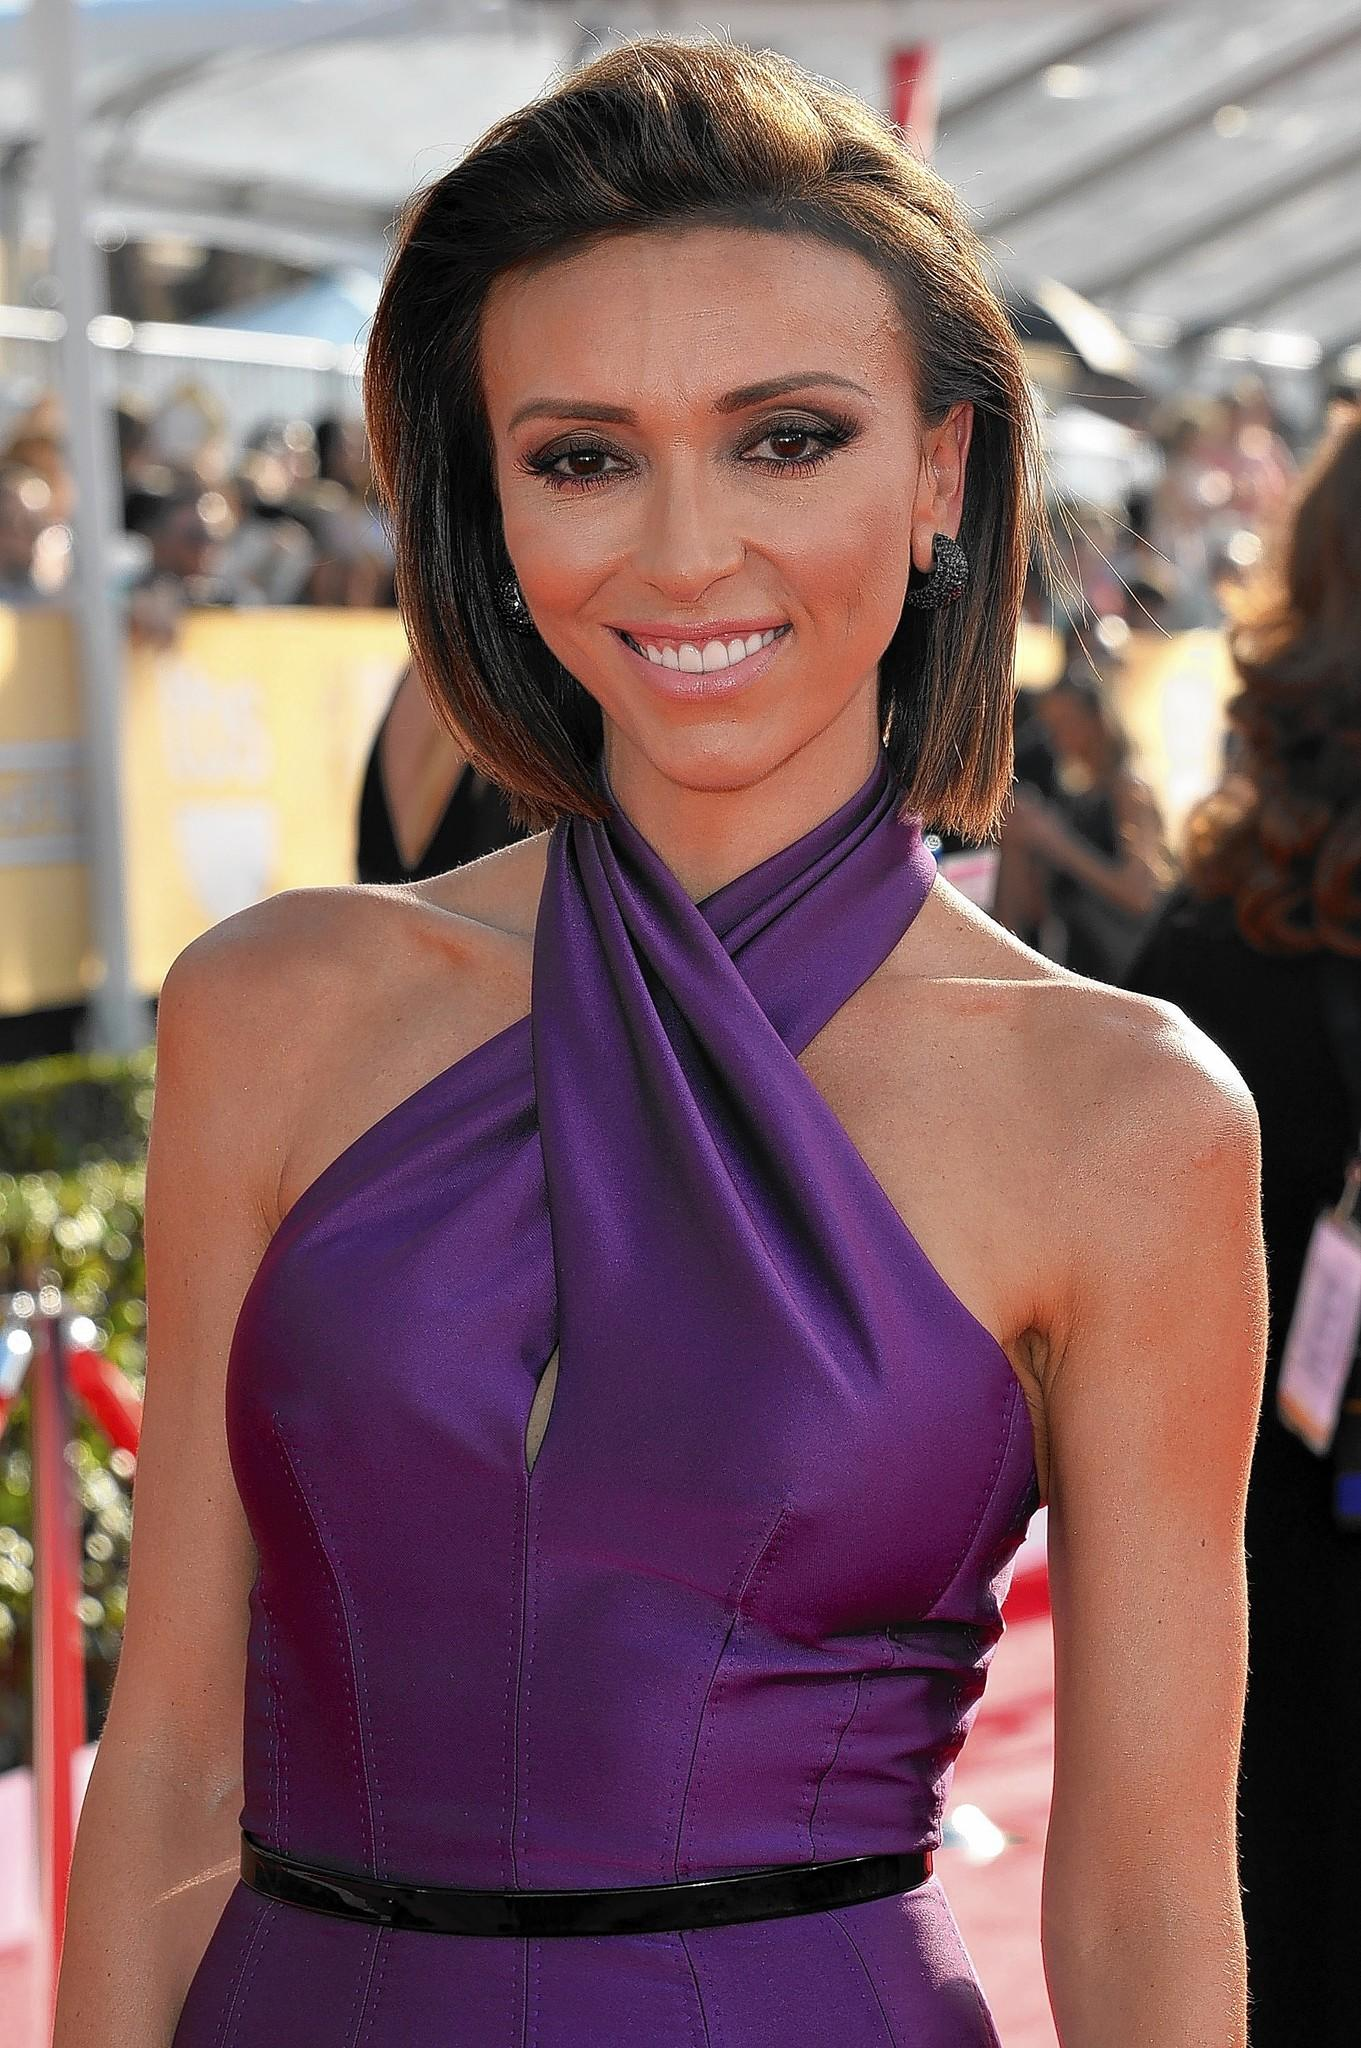 Giuliana Rancic attends the 20th Annual Screen Actors Guild Awards at The Shrine Auditorium on January 18, 2014 in Los Angeles, California.